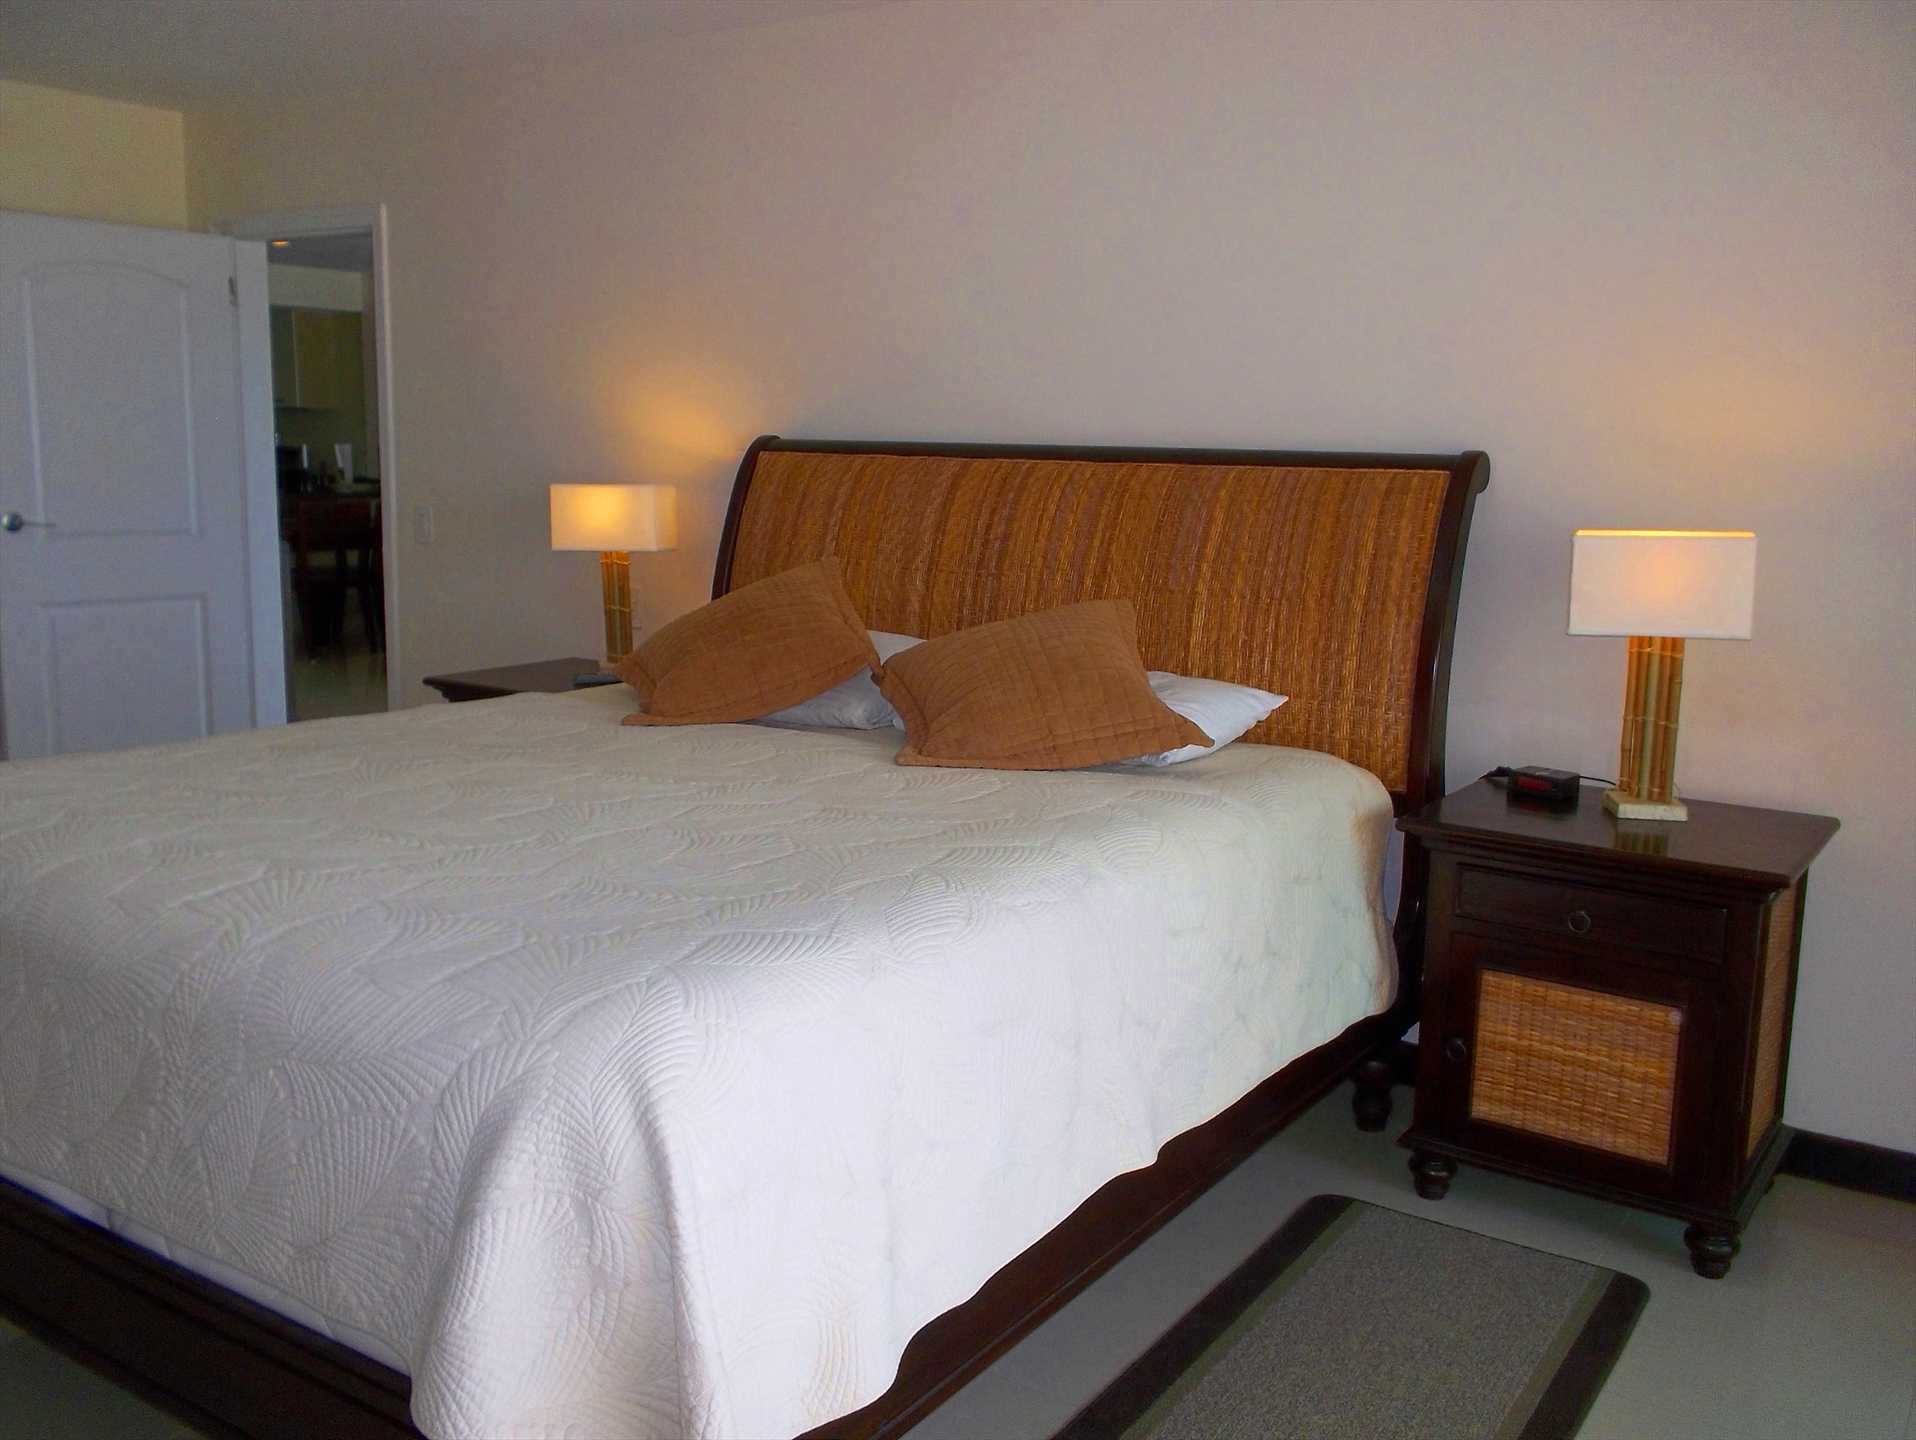 Master bedroom with Sealy PosturepedicA- mattress king-size bed.